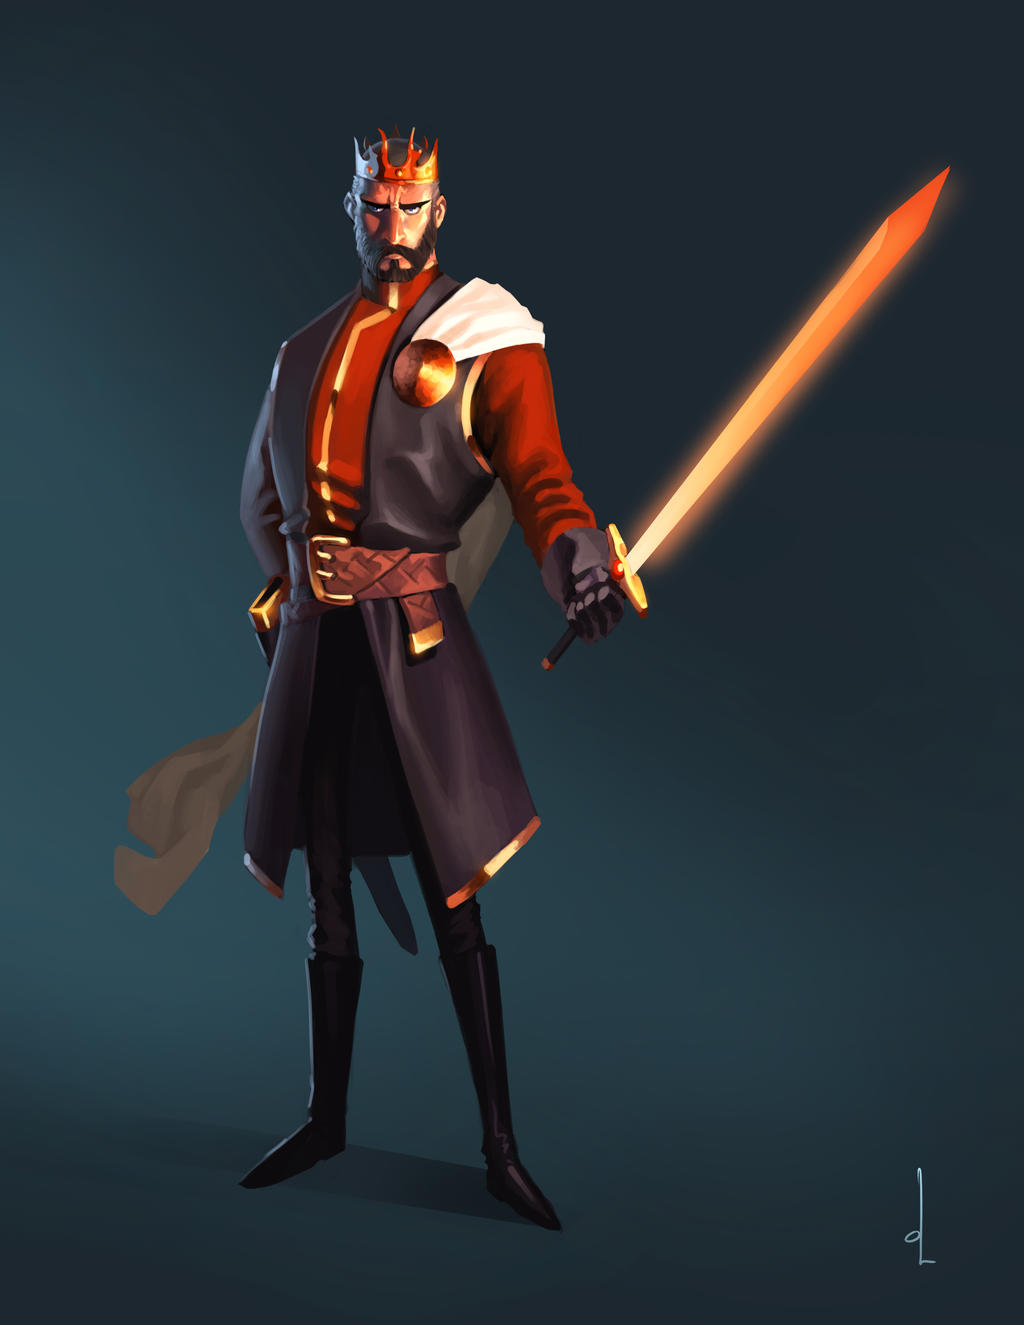 GOT Artjam - Stannis Baratheon by omarito